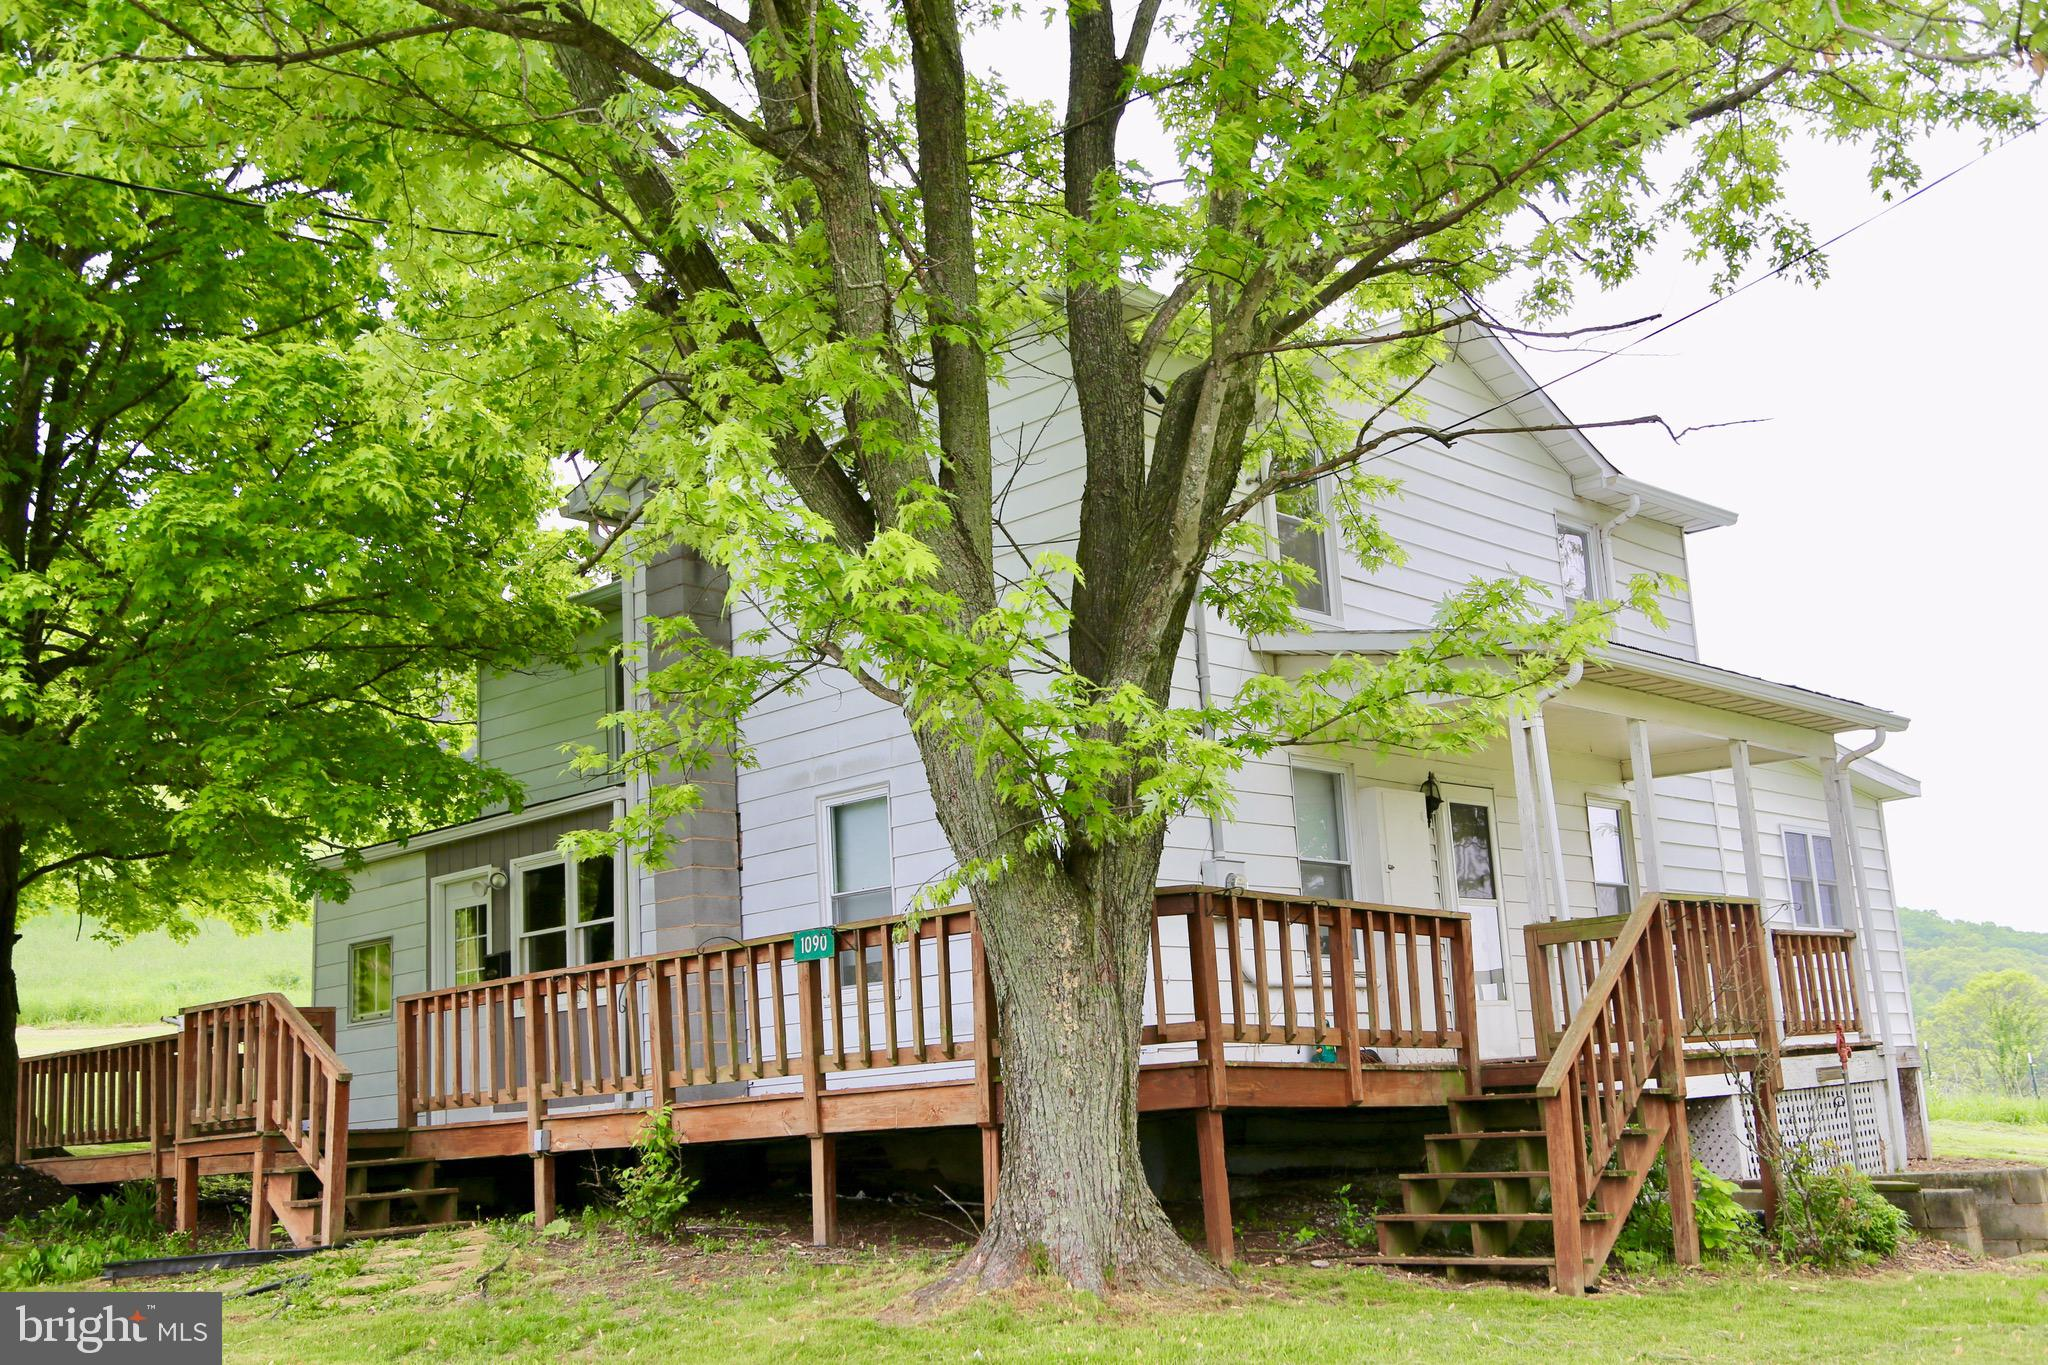 1090 LUTHER HEISHMAN ROAD, BAKER, WV 26801